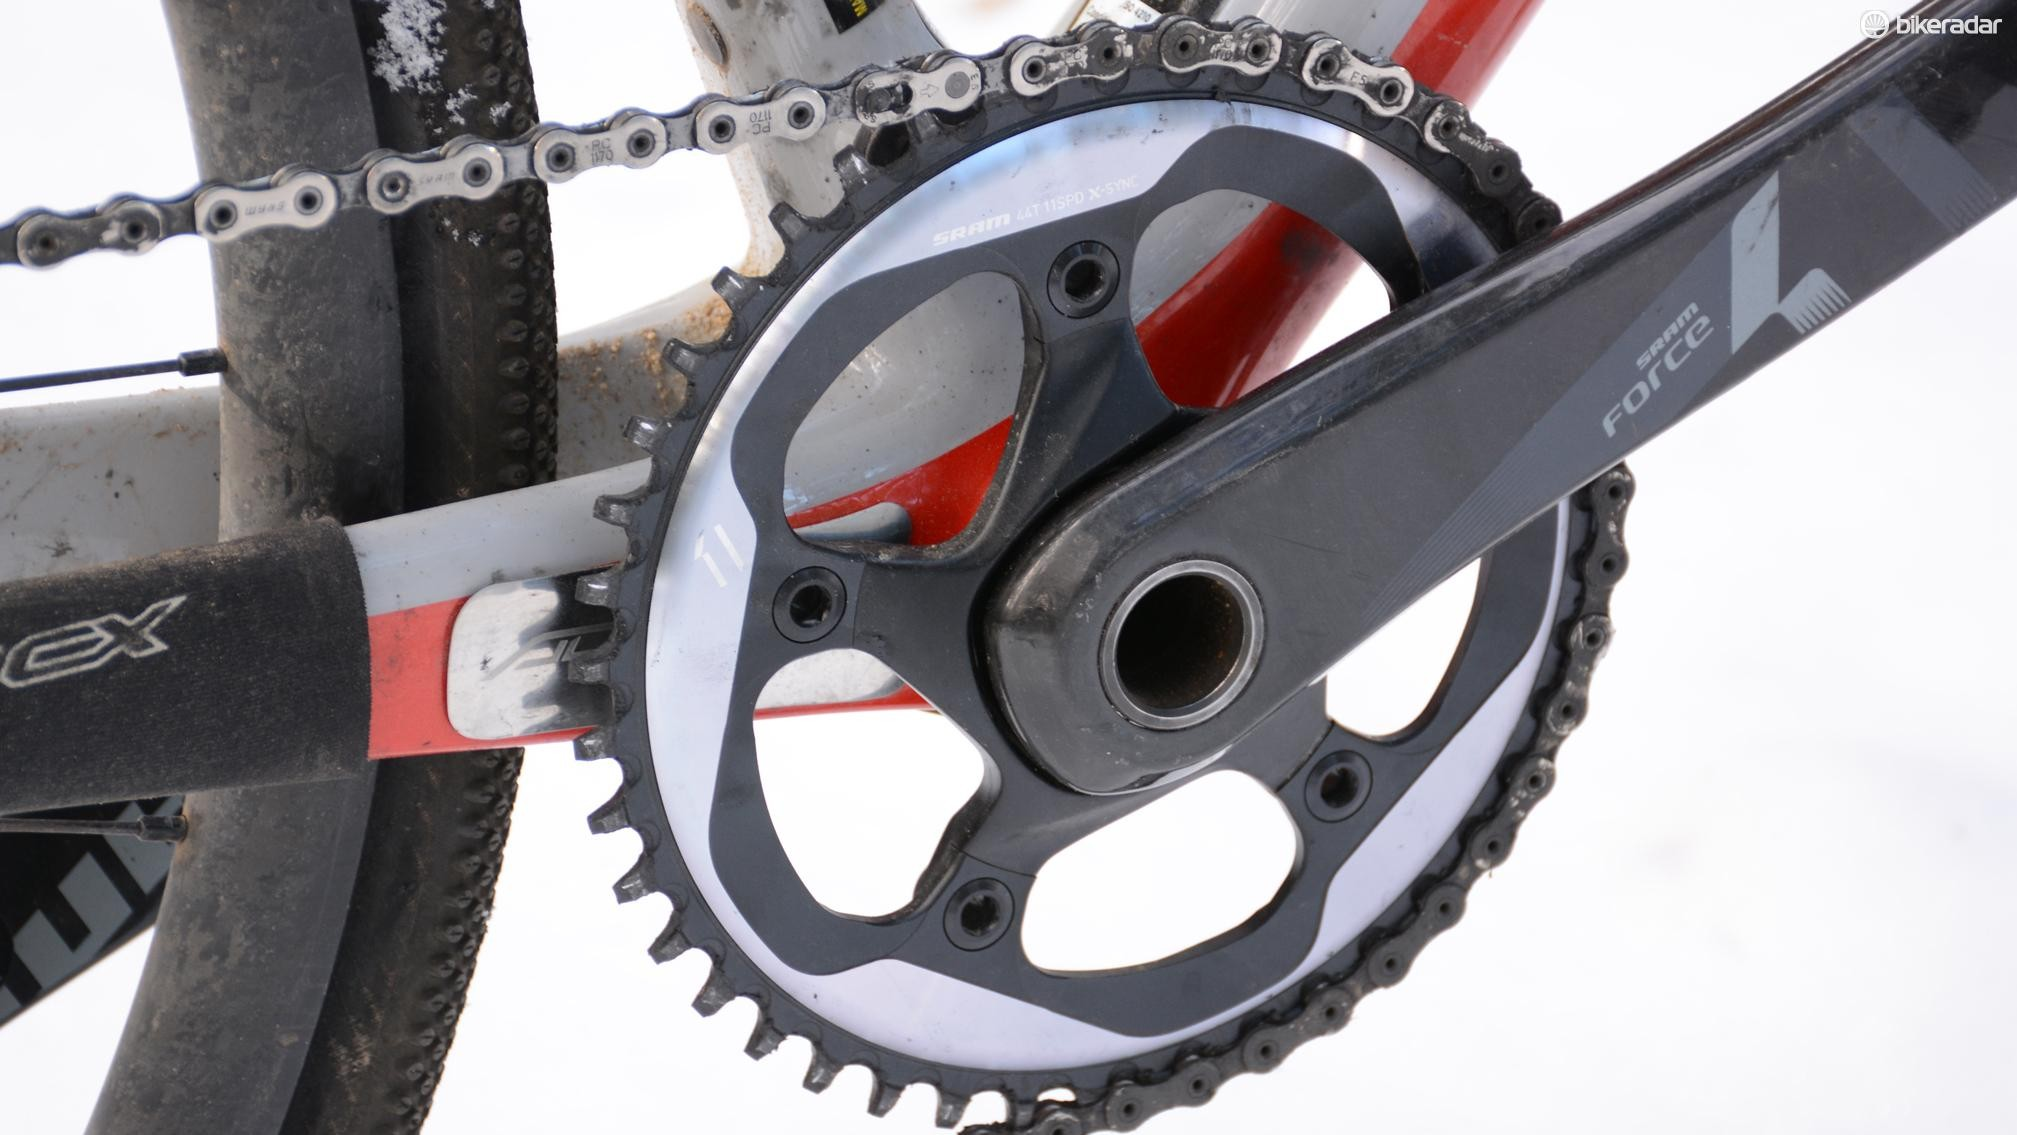 The massive 44t SRAM narrow/wide chainring held the chain without error